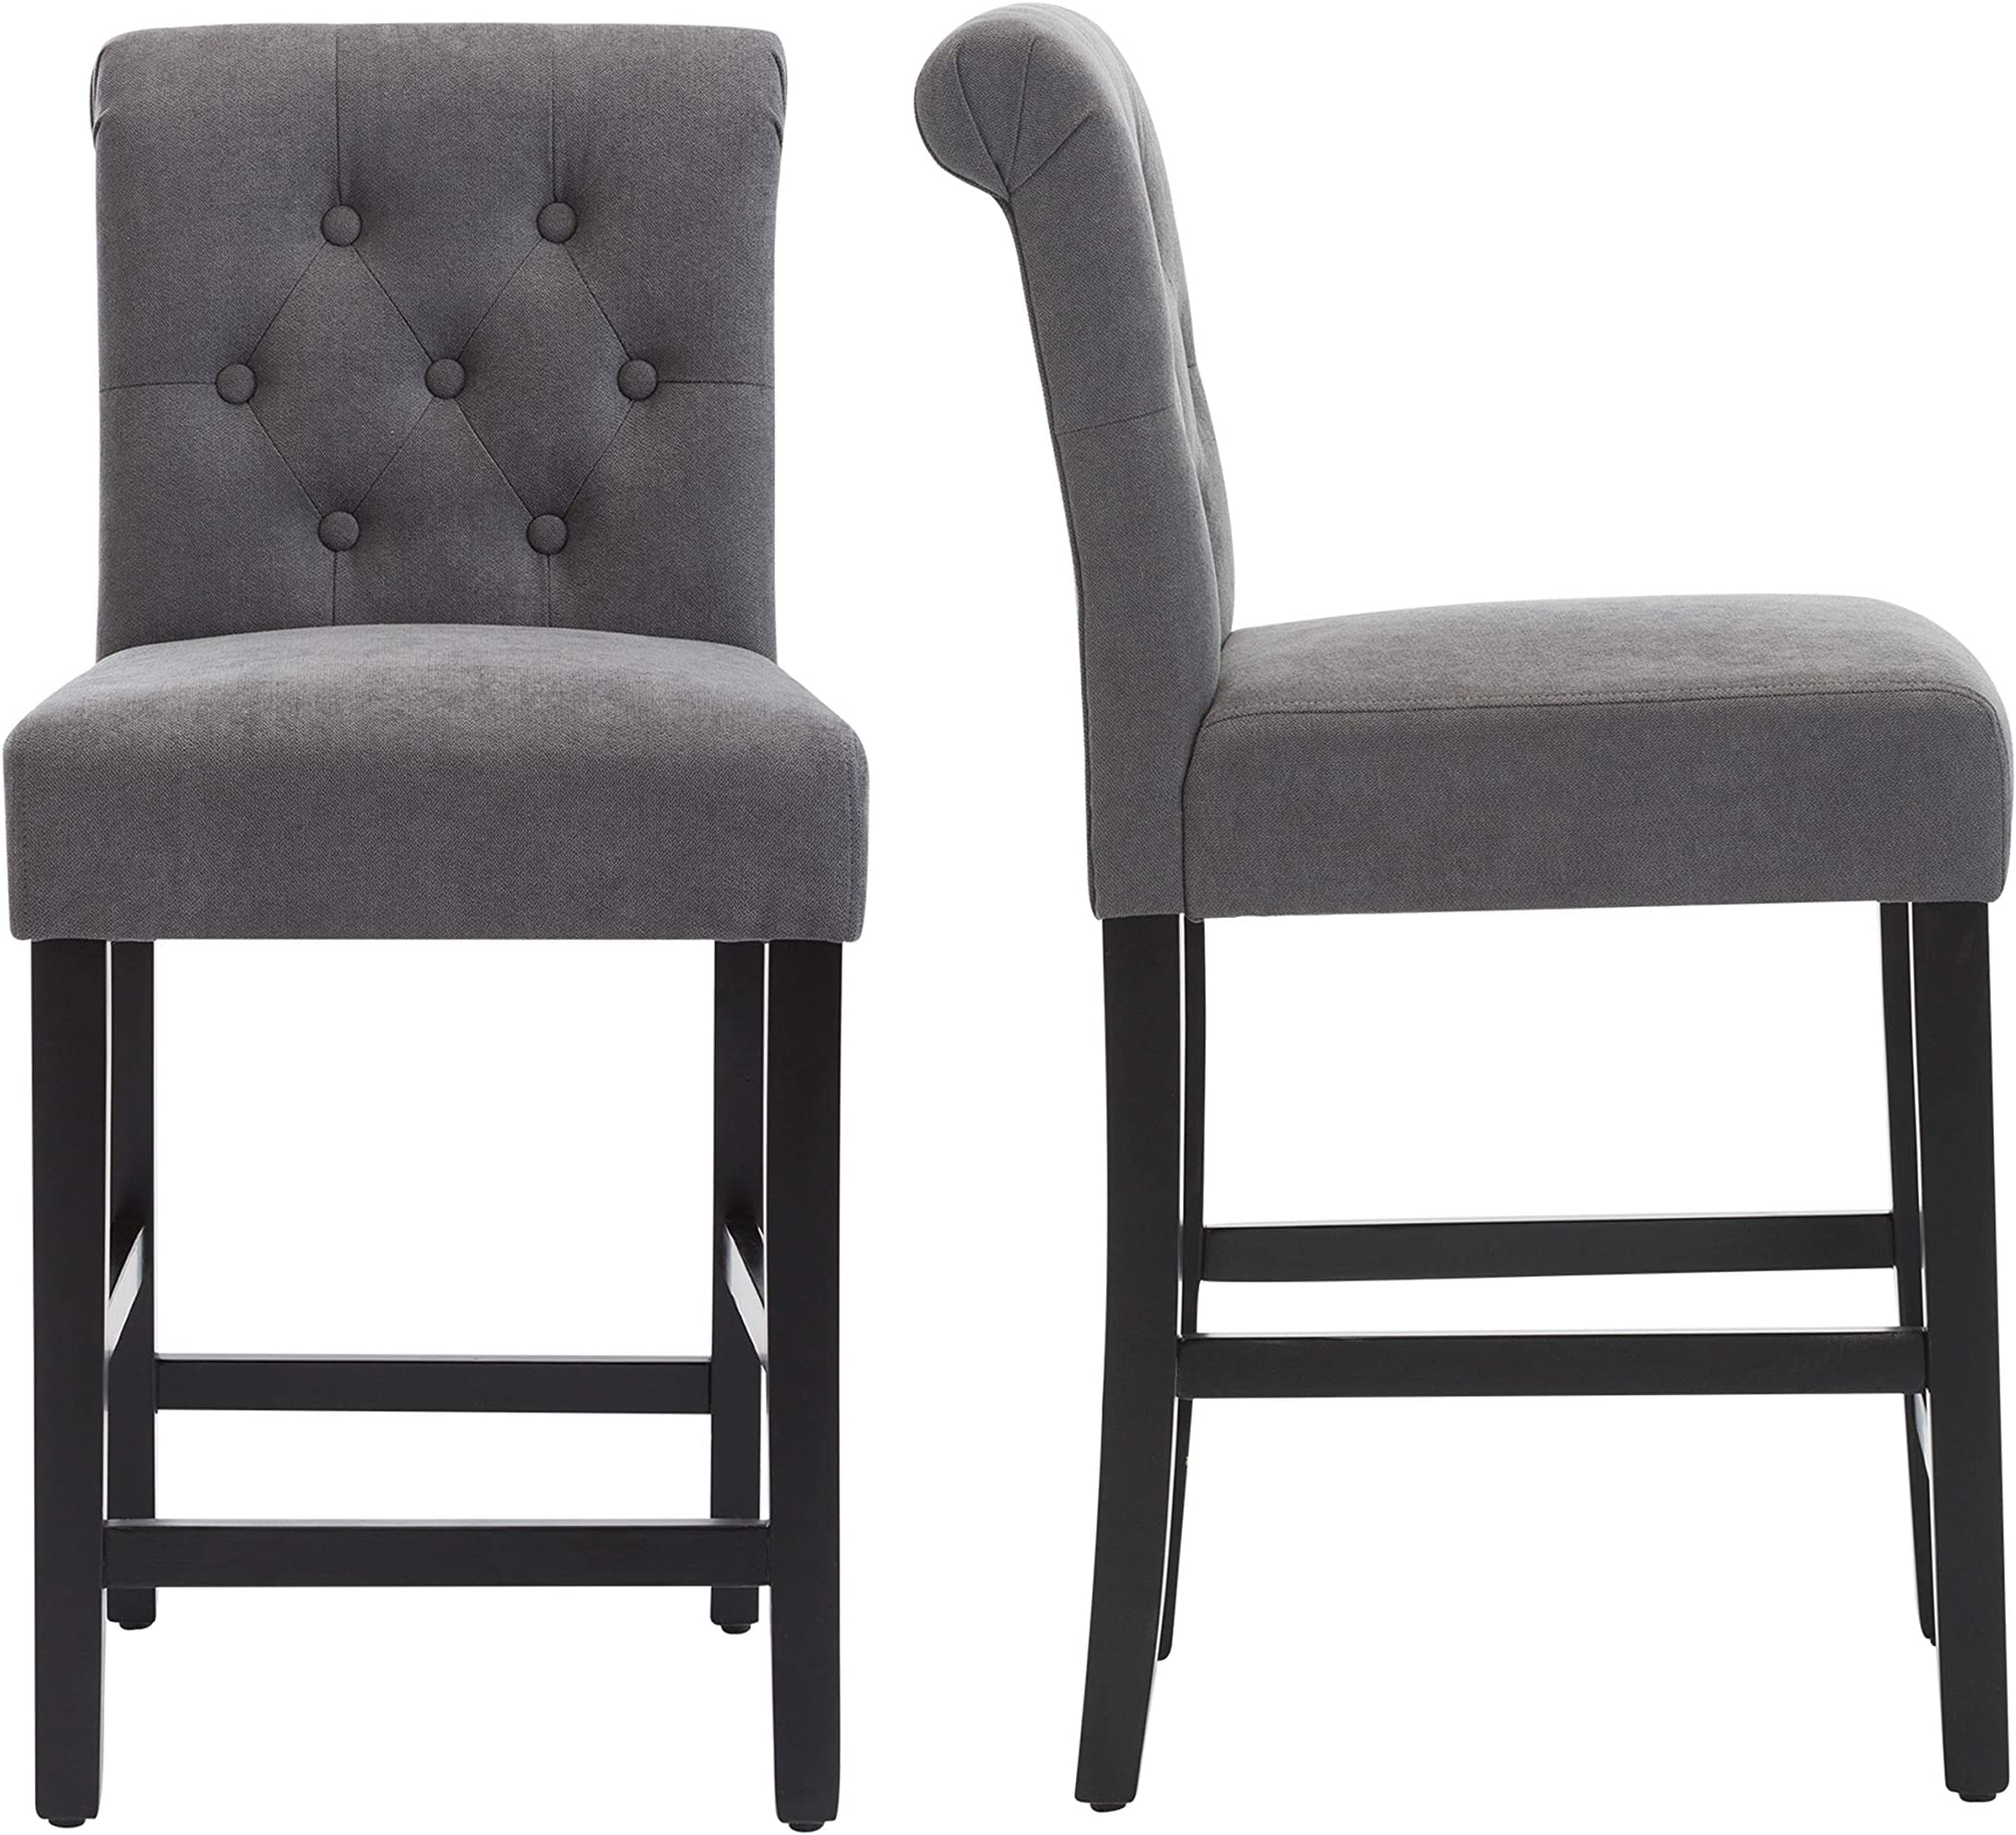 LSSBOUGHT 24 Inches Stylish Fabric Counter Height Stools with Solid Wood Legs, Set of 2 (Gray)